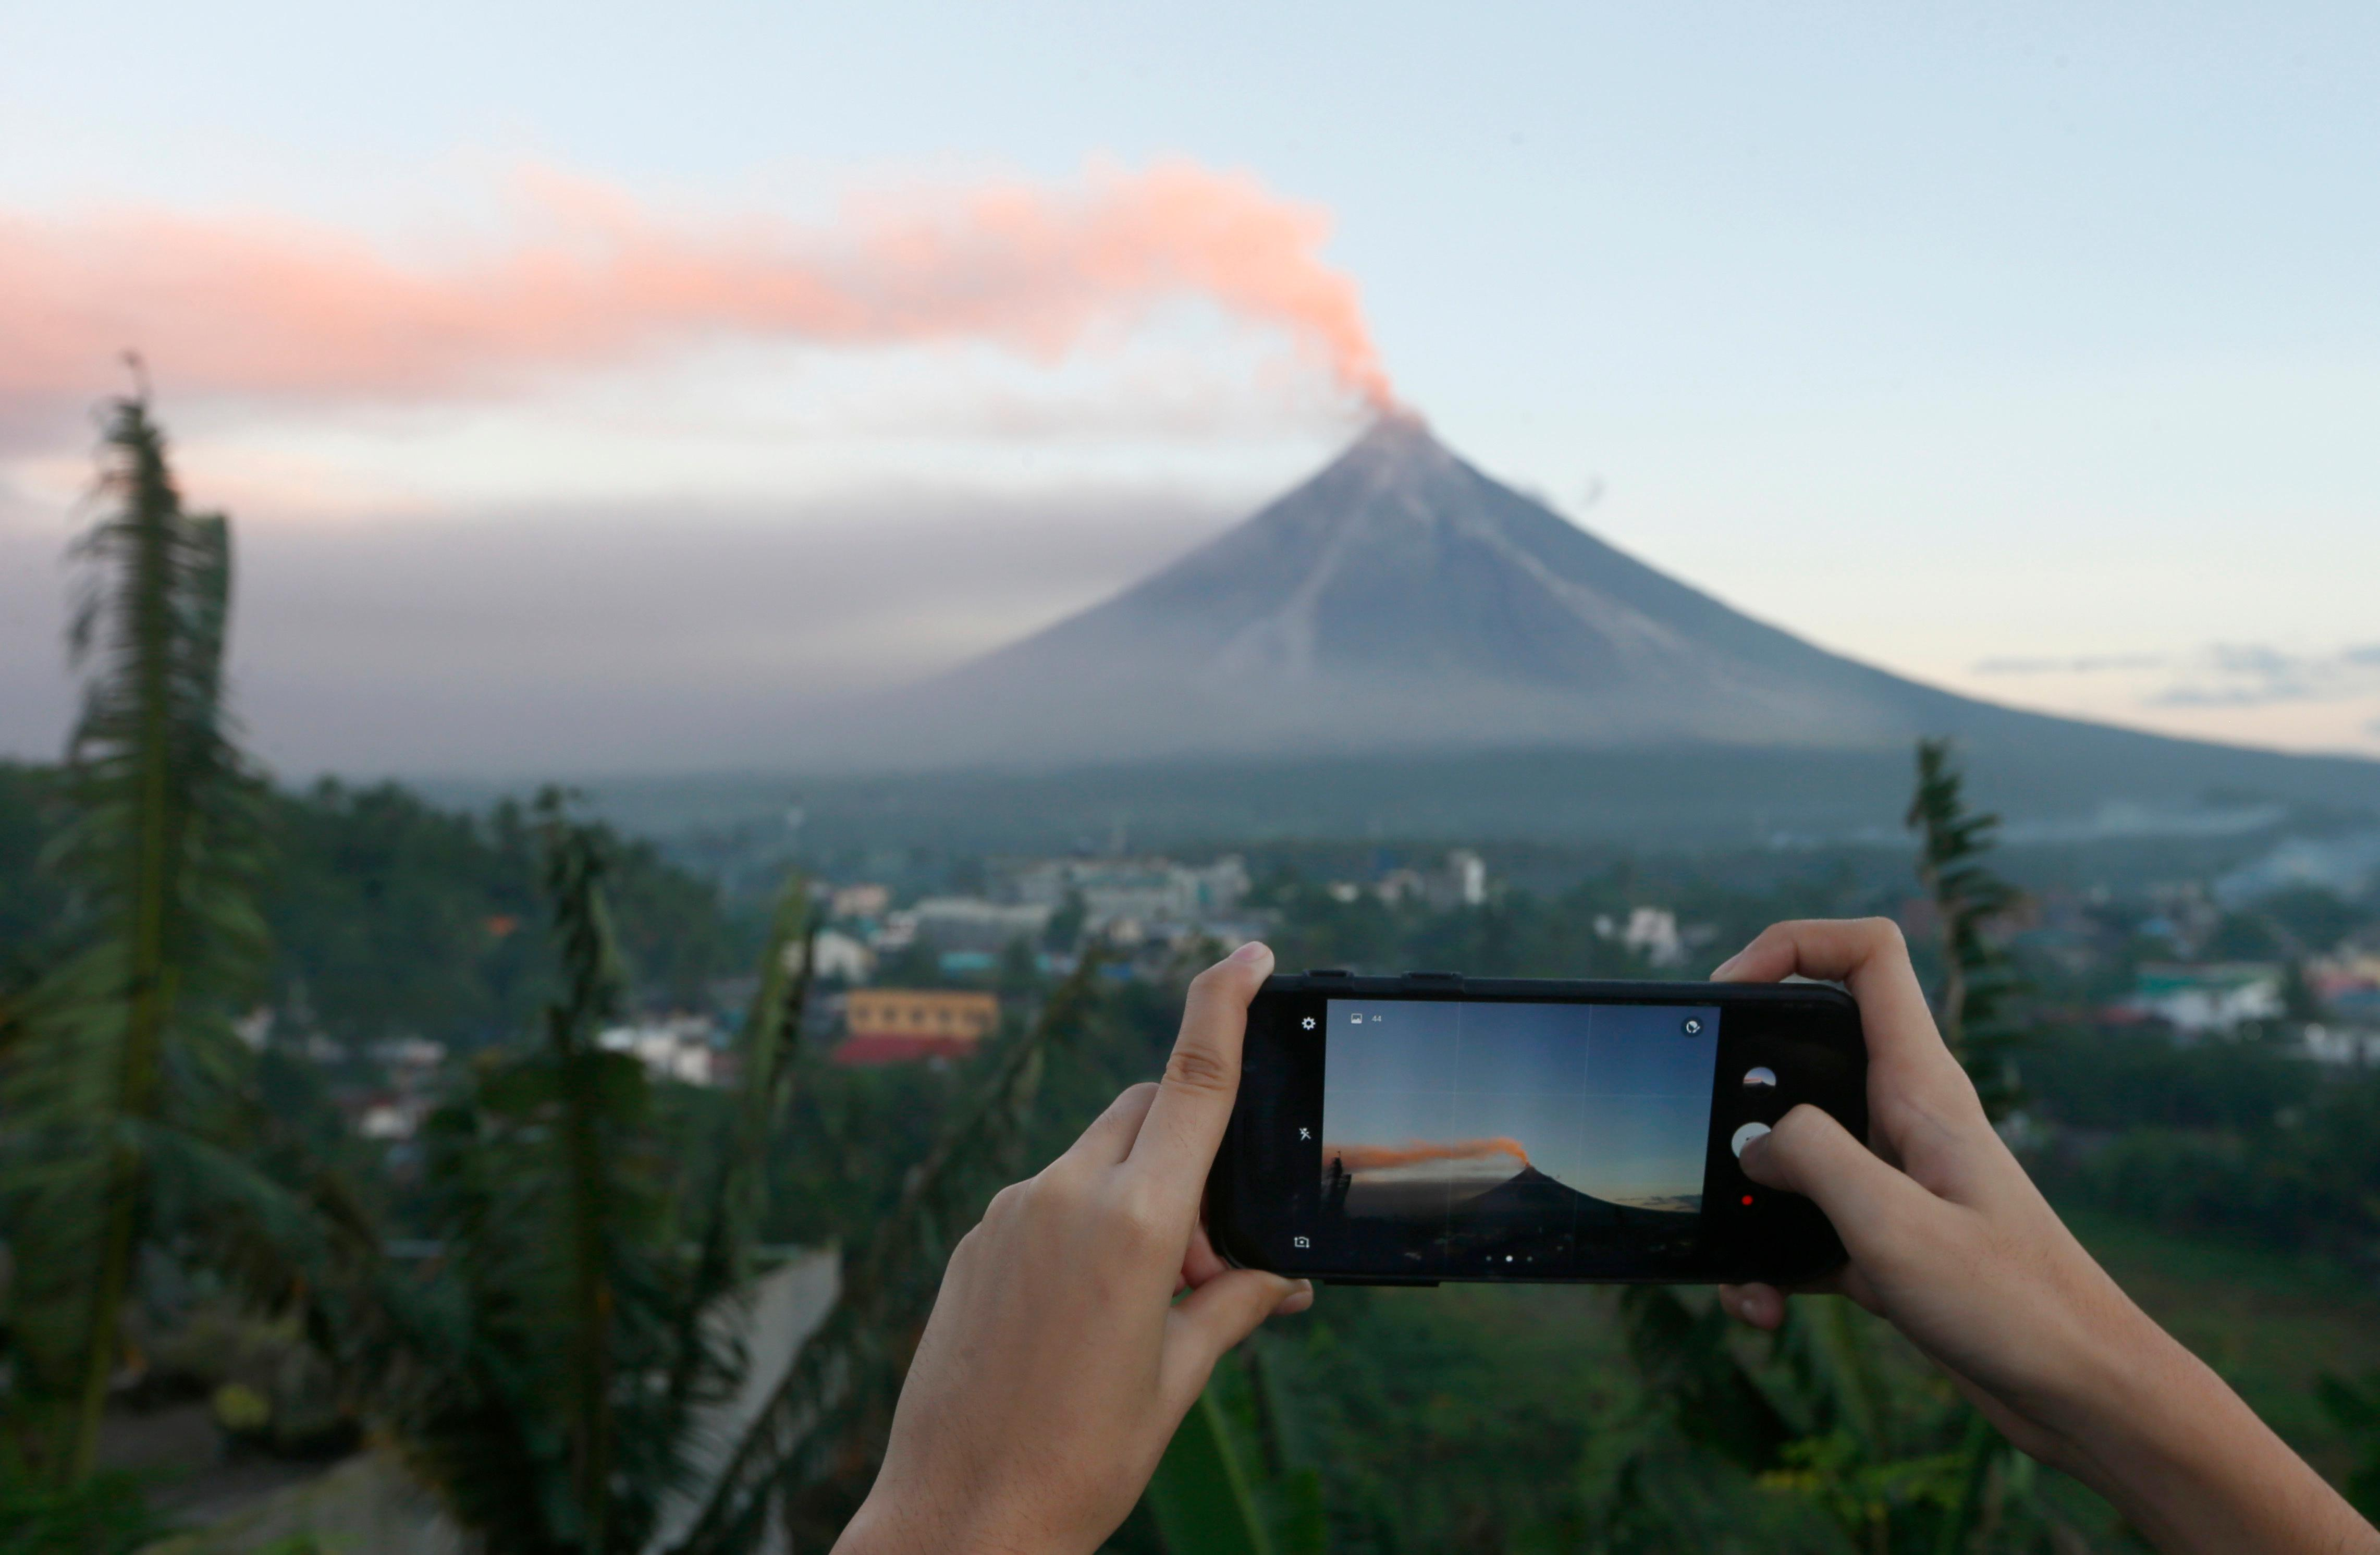 A resident takes photos of Mayon volcano as it spews ash during a lull in its eruption Tuesday, Jan. 23, 2018 as seen from Legazpi city, Albay province, around 340 kilometers (200 miles) southeast of Manila, Philippines. The Philippines' most active volcano ejected a huge column of lava fragments, ash and smoke in another thunderous explosion at dawn Tuesday, sending thousands of villagers back to evacuation centers and prompting a warning that a violent eruption may be imminent. (AP Photo/Bullit Marquez)